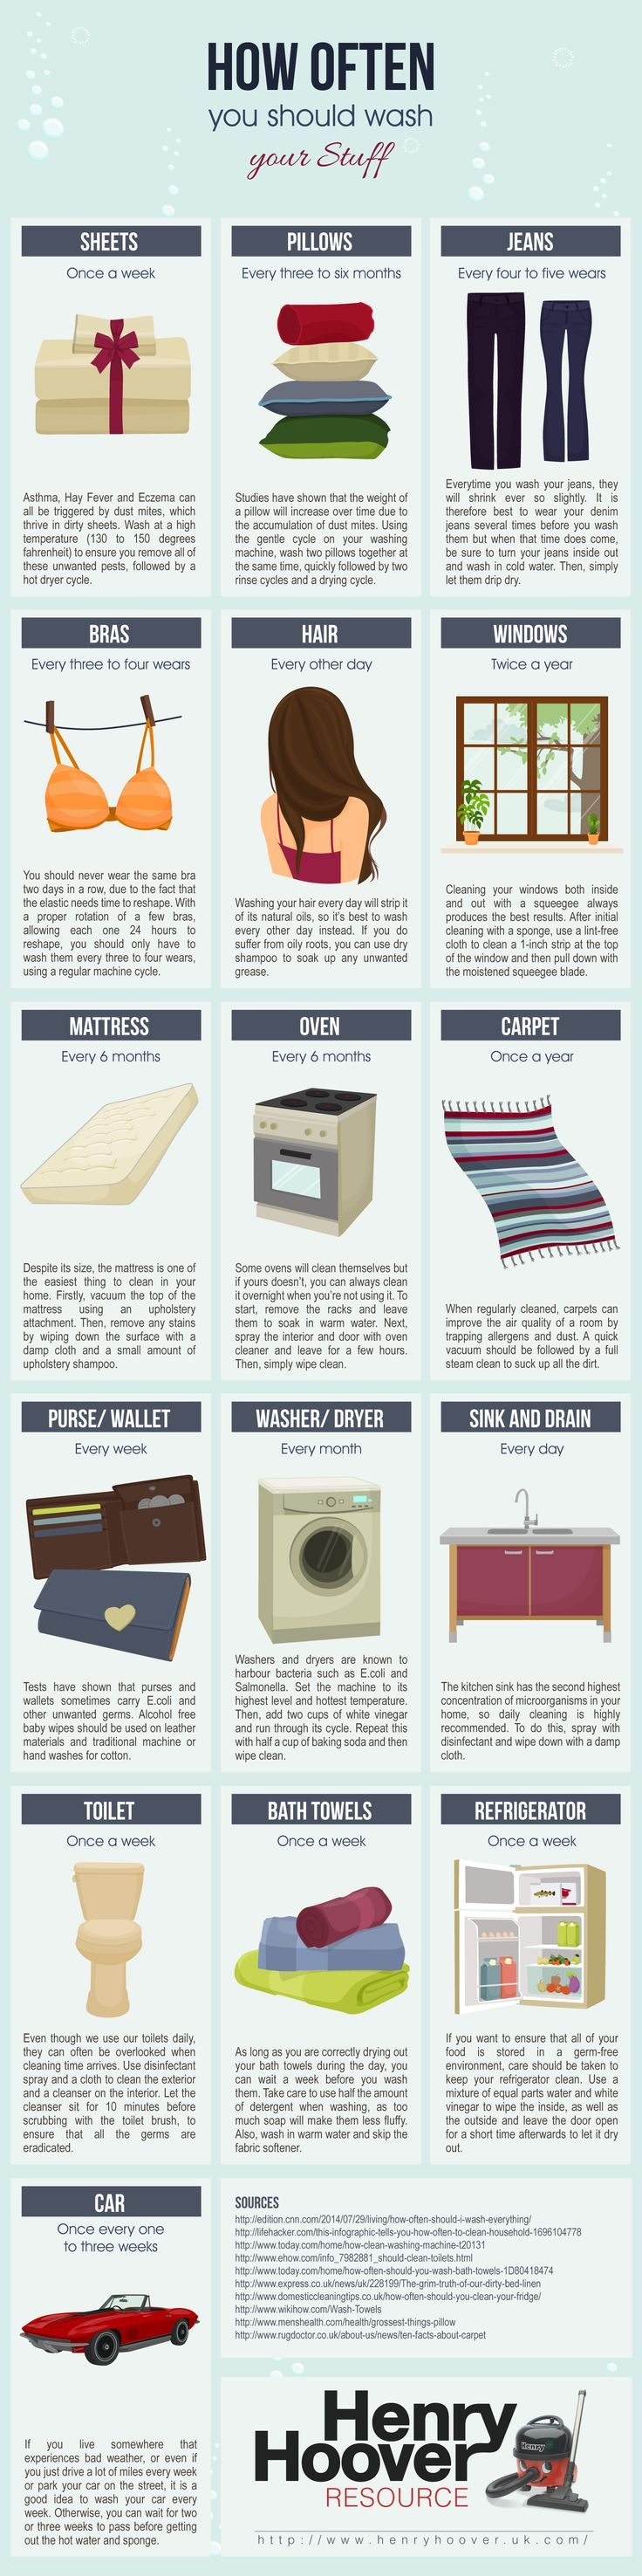 Everybody wants to have a clean home, but sometimes it's hard to know often you should clean certain items.  After reading the chart below, I was pretty surprised how off I was on certain things.  Apparently, I don't need to wash my jeans so much. This super helpful chart was put together